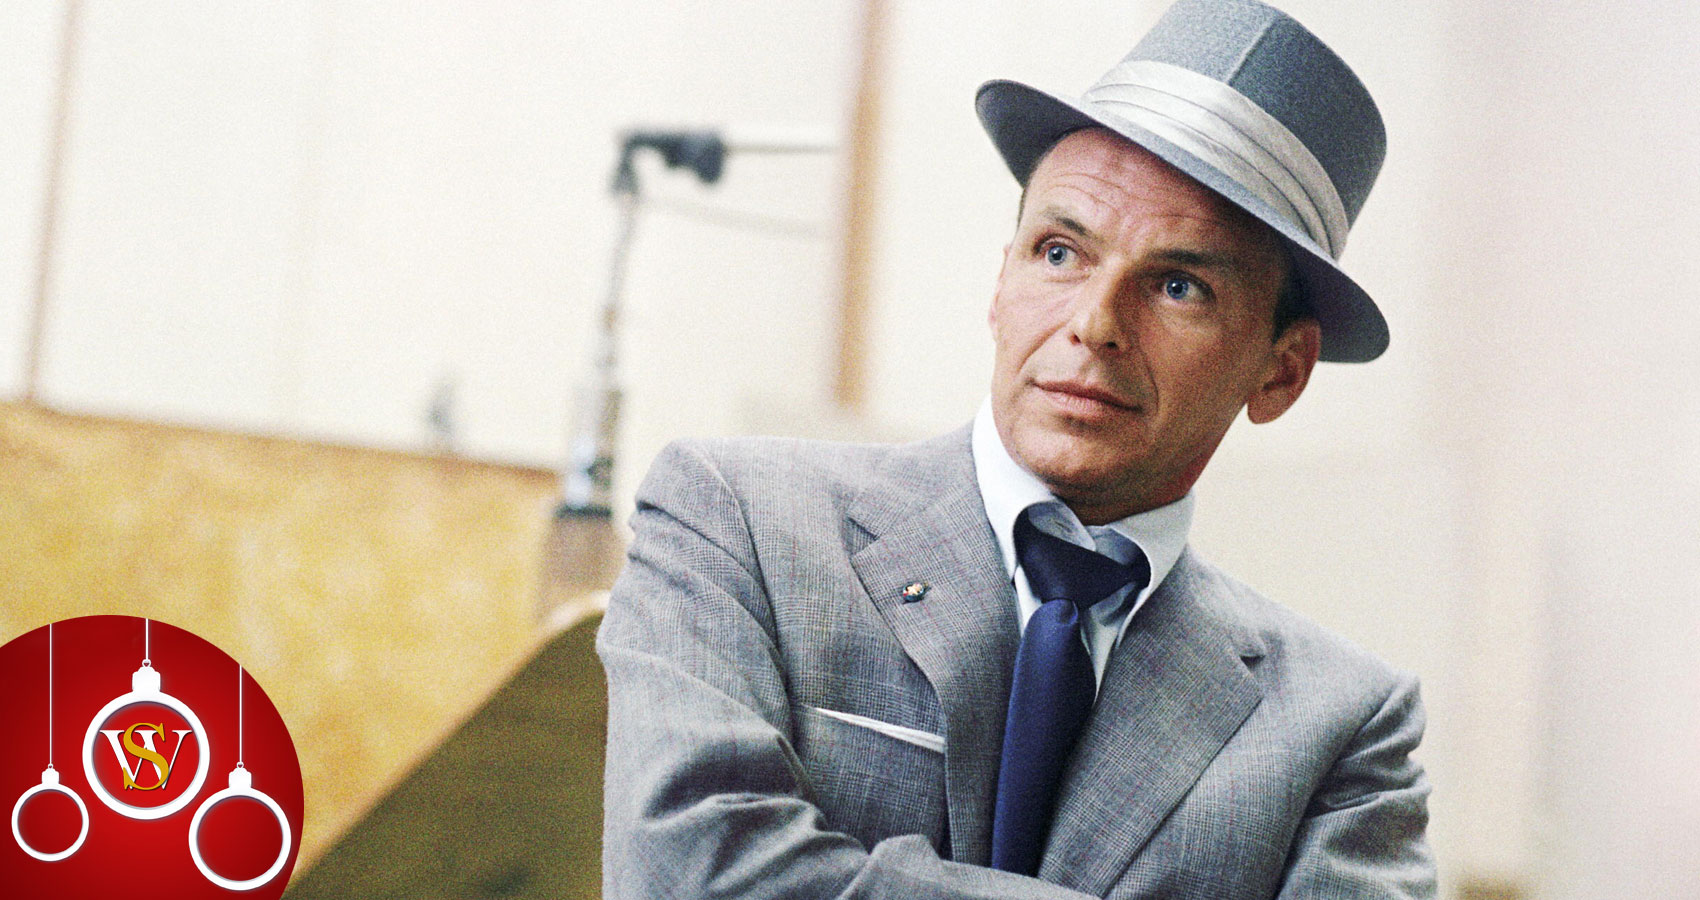 The Gift of Sinatra, poetry by Catherine Gigante-Brown at Spillwords.com